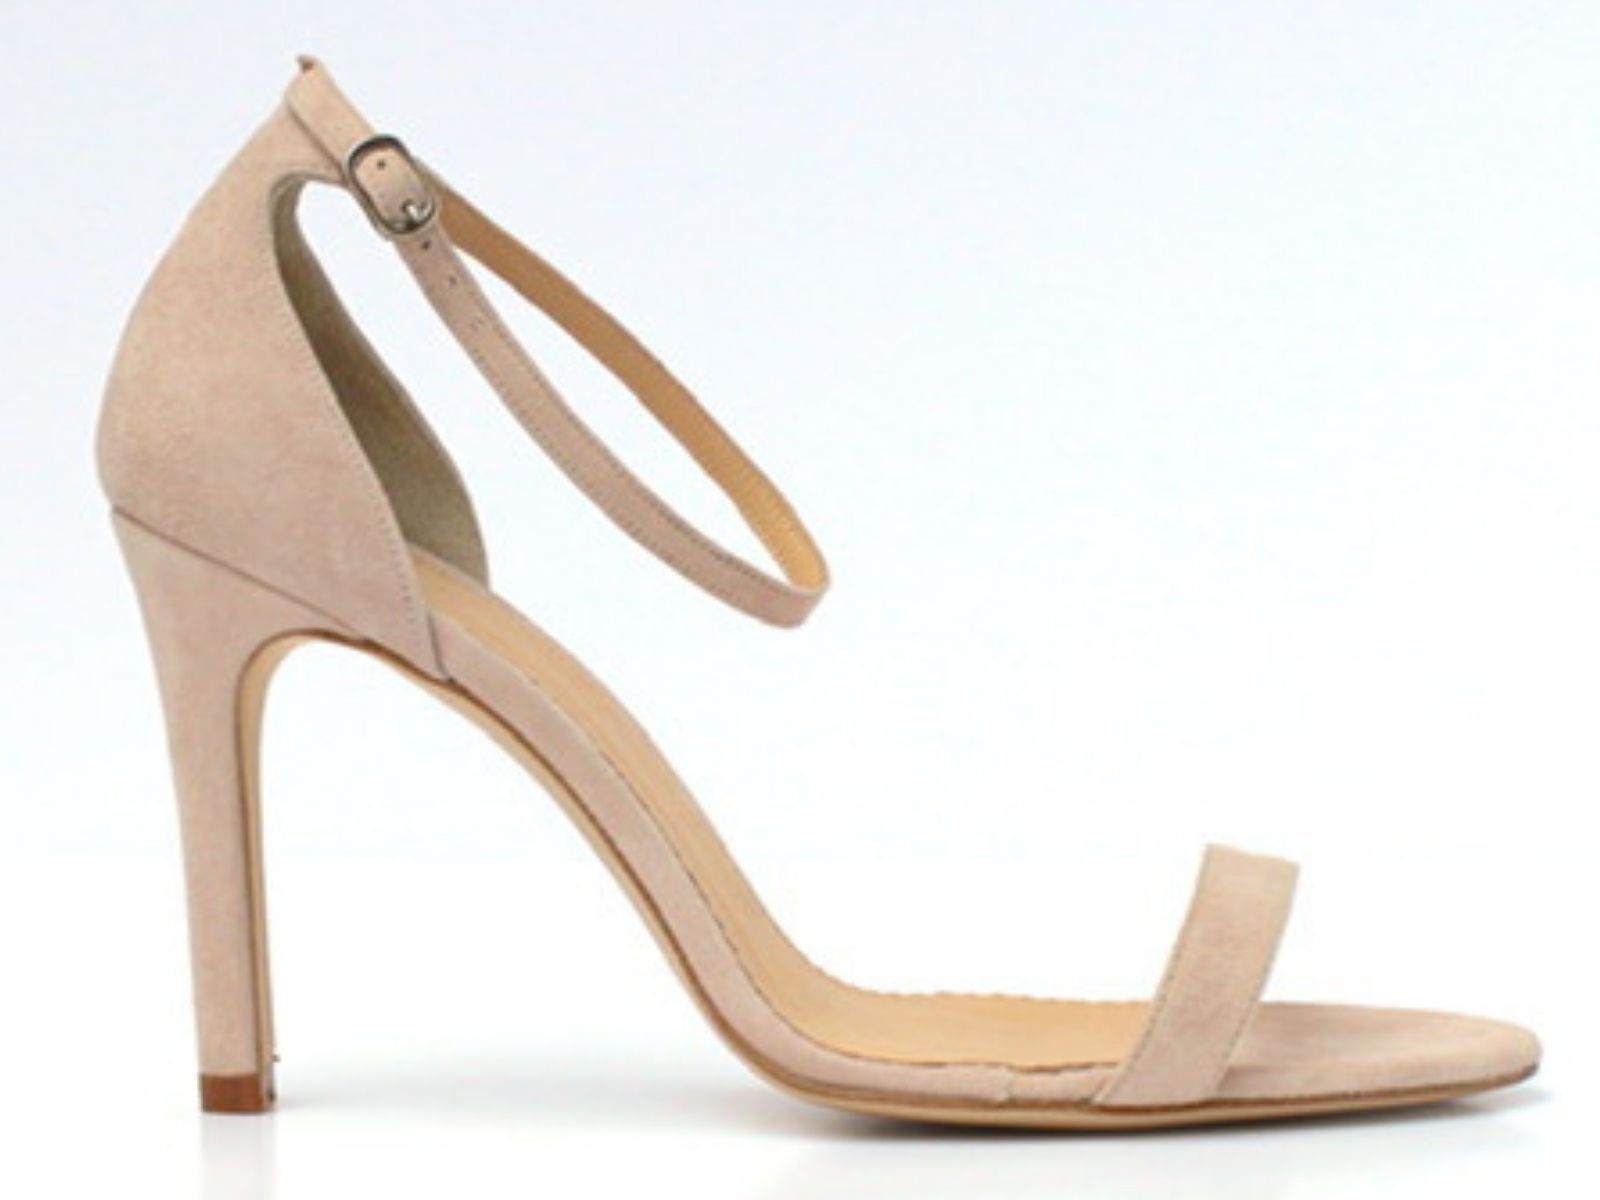 Di Hassall wedding shoes with strap